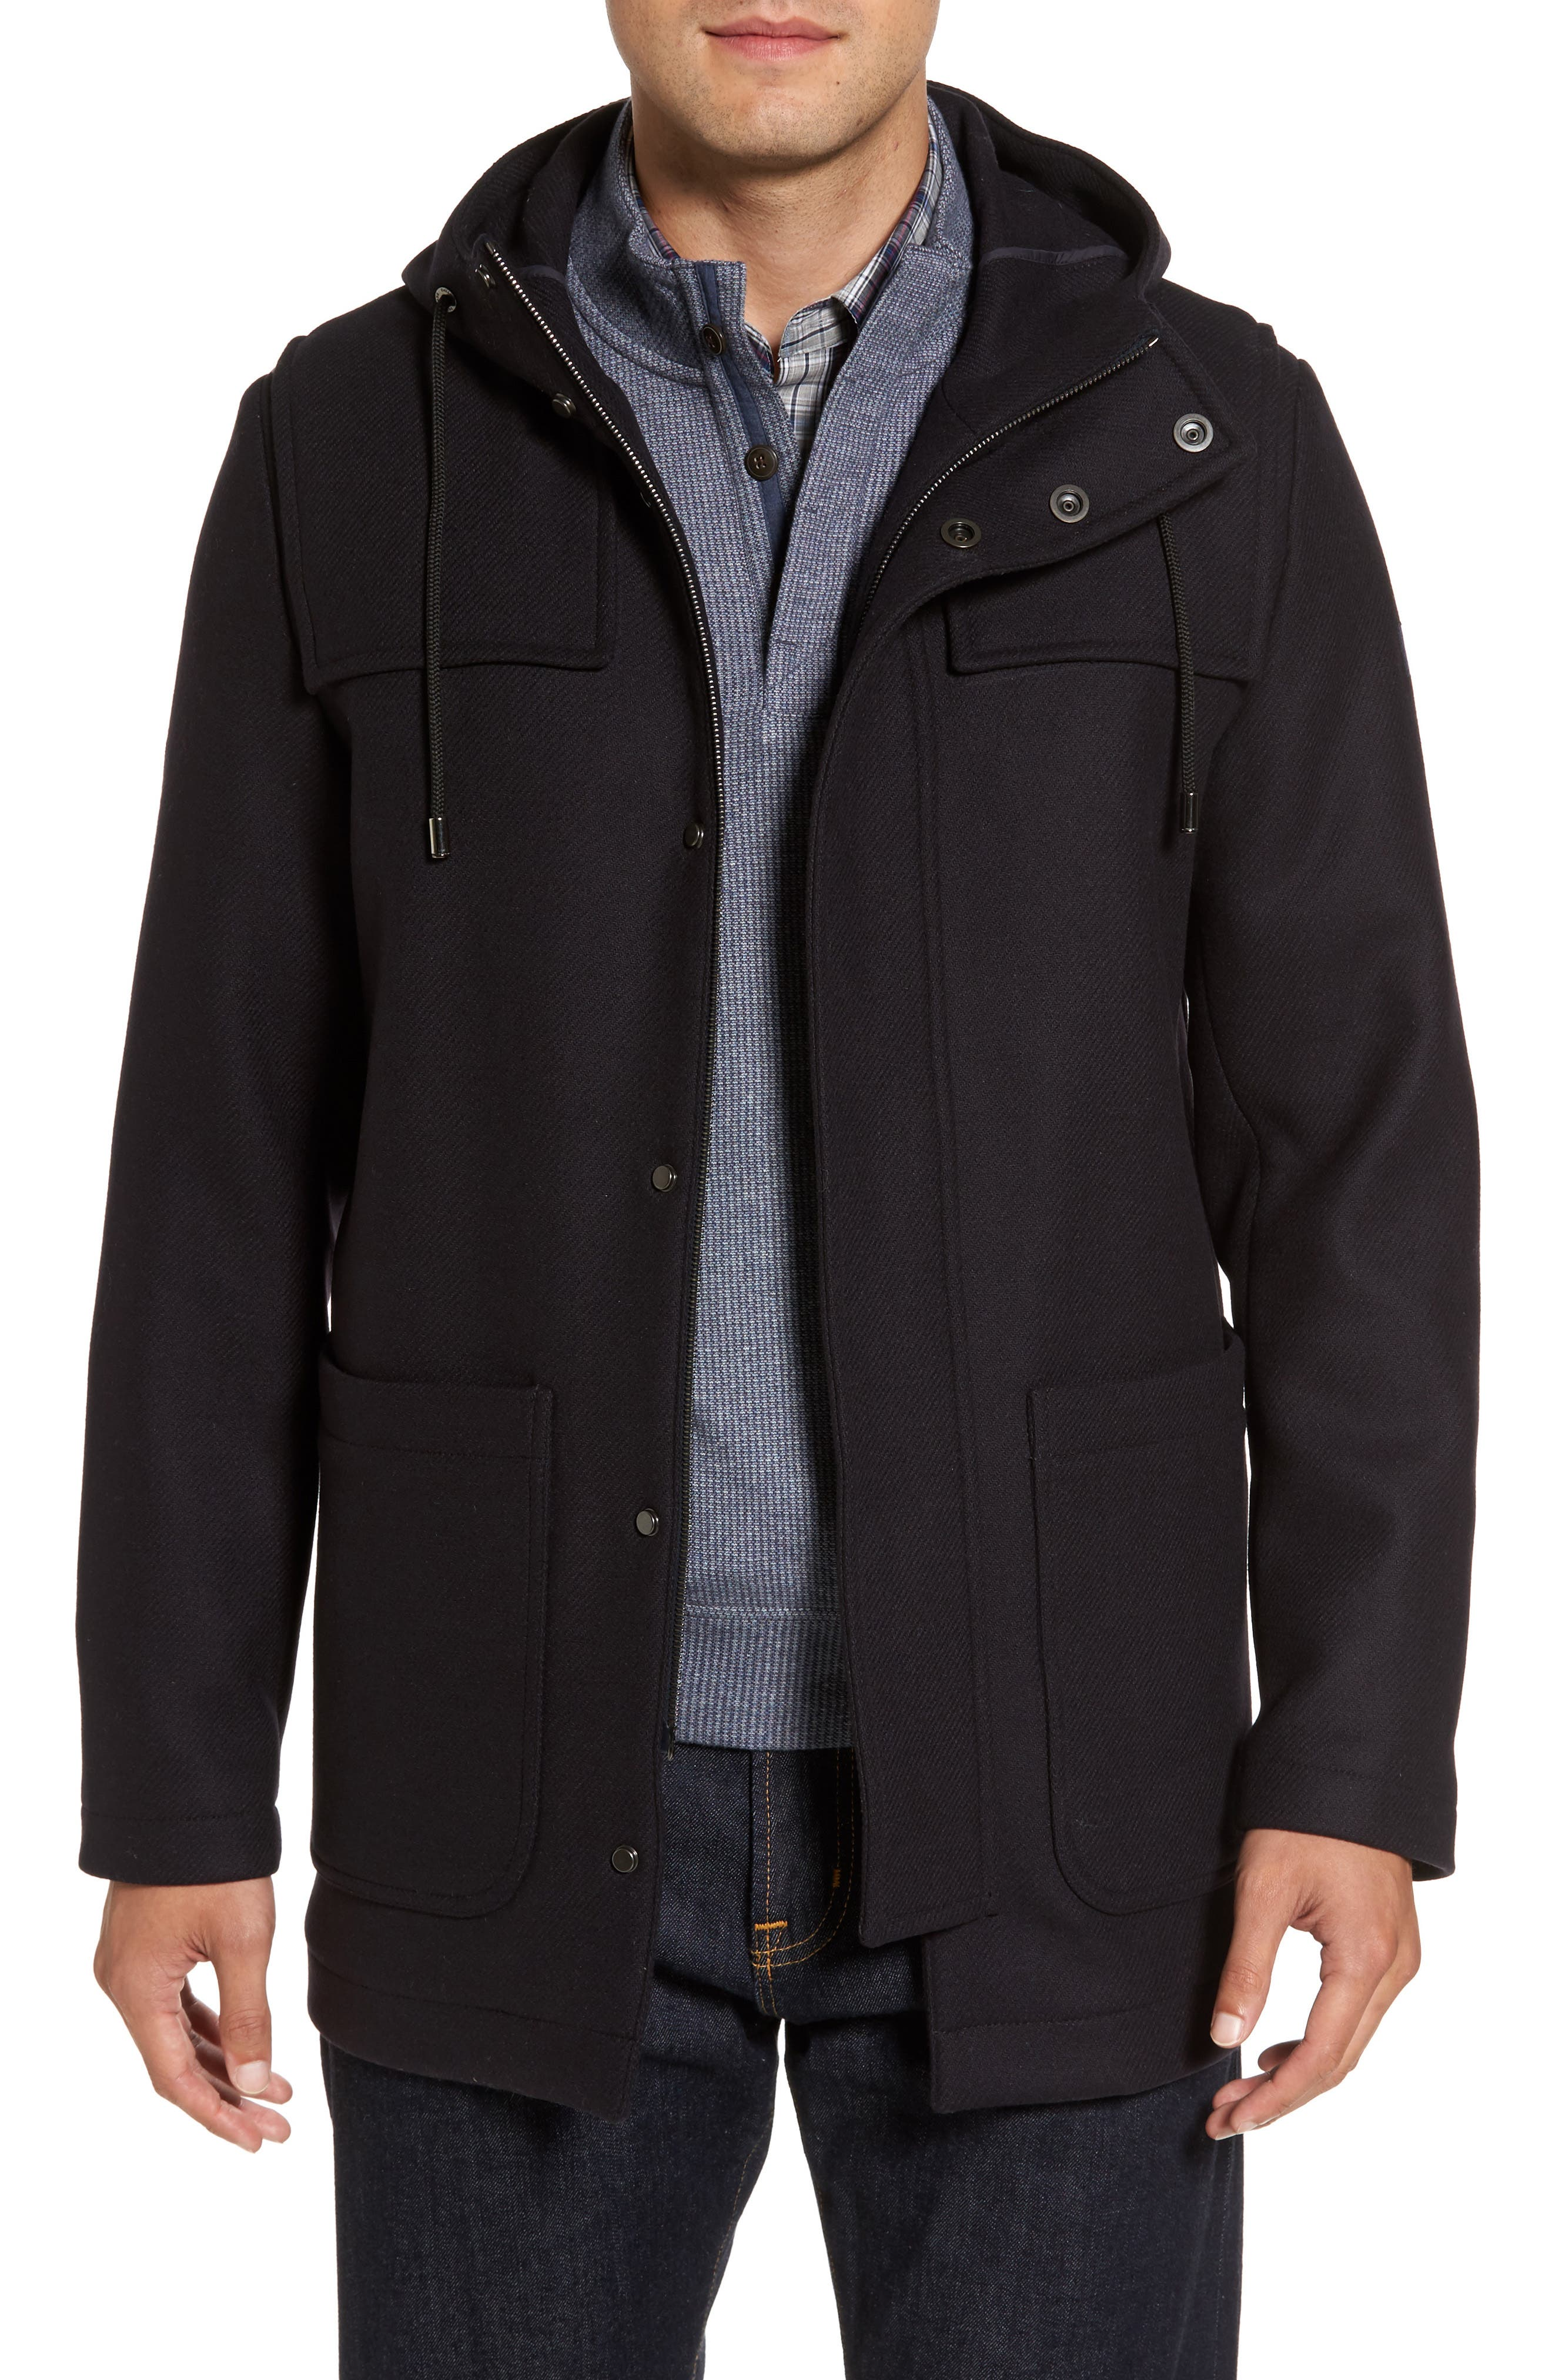 Paul&Shark Wool Blend Duffle Coat,                             Main thumbnail 1, color,                             400